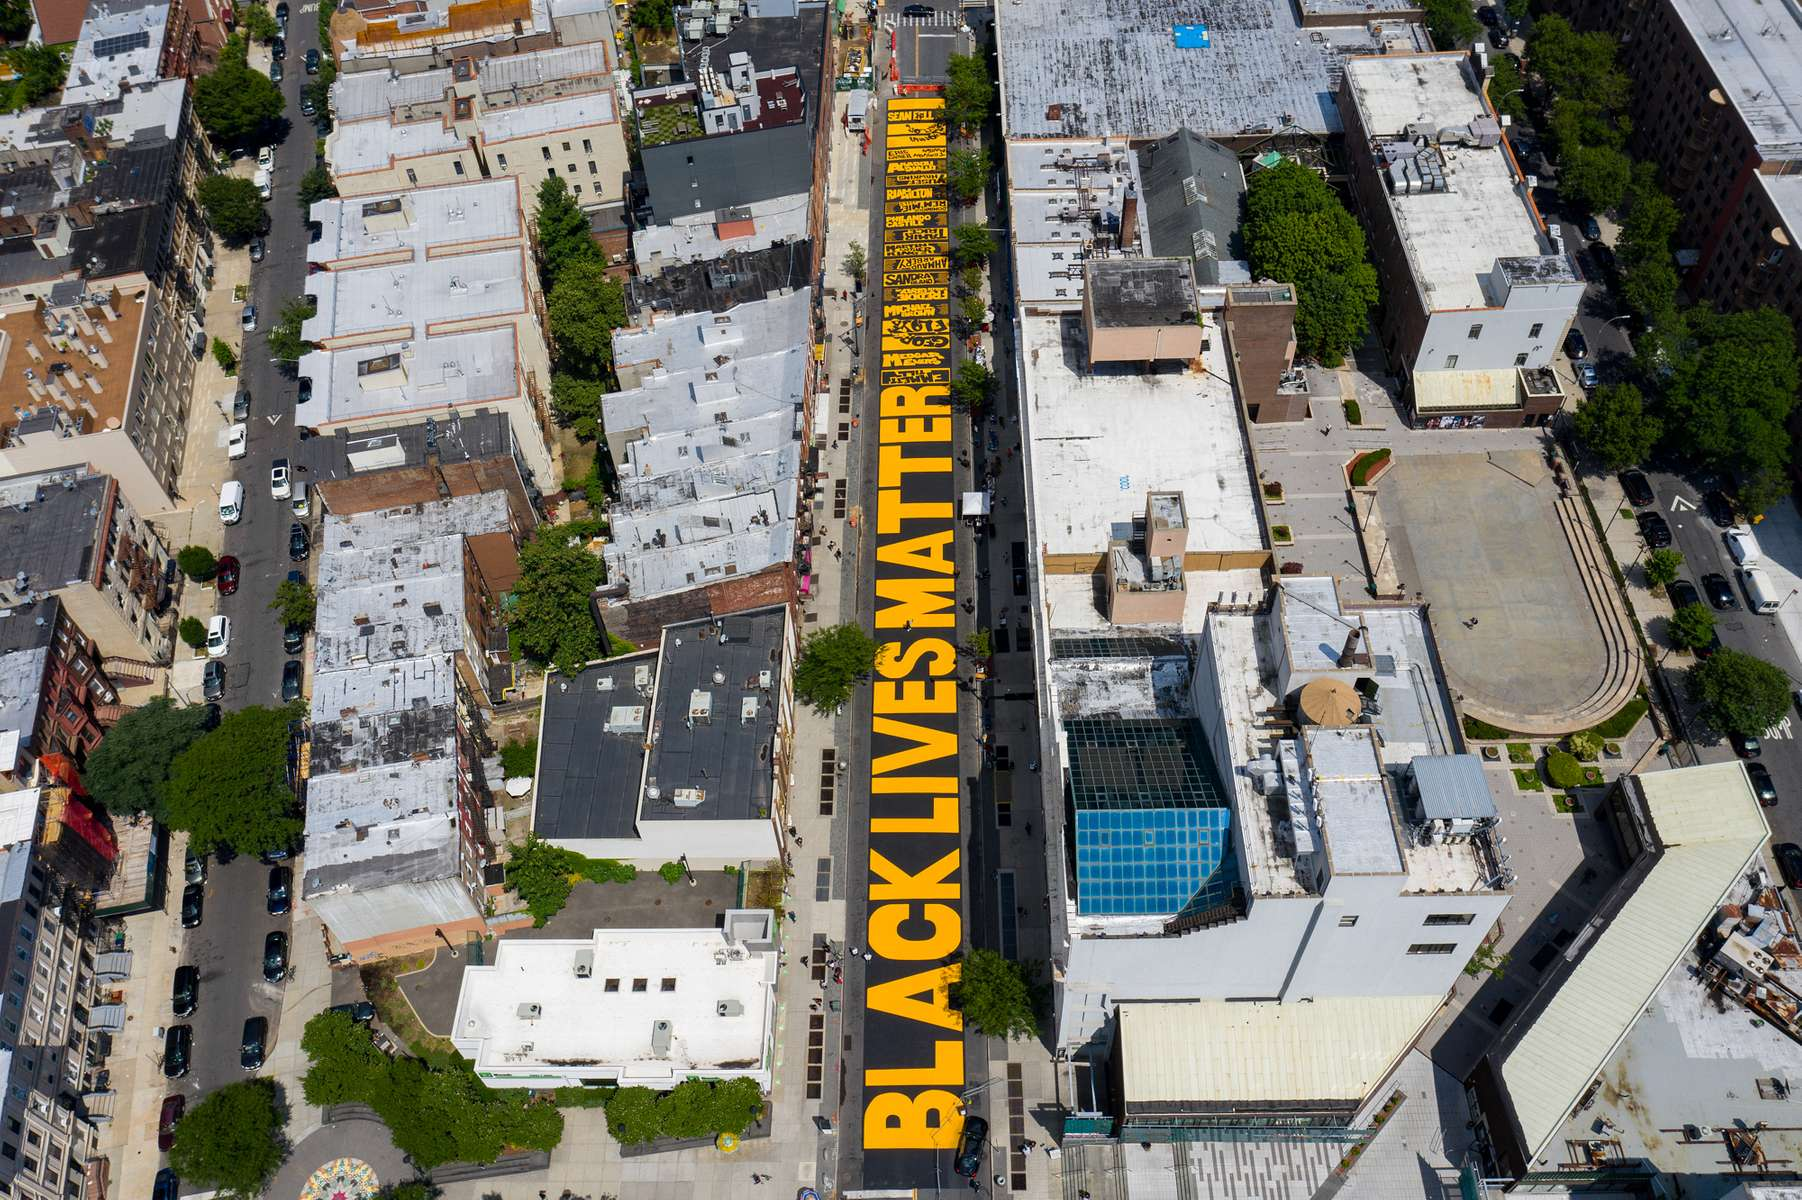 An Aerial view of a Black Lives Matter Mural on June 29, 2020 in the Bedford Styvesant Neighborhood of Brooklyn, New York.